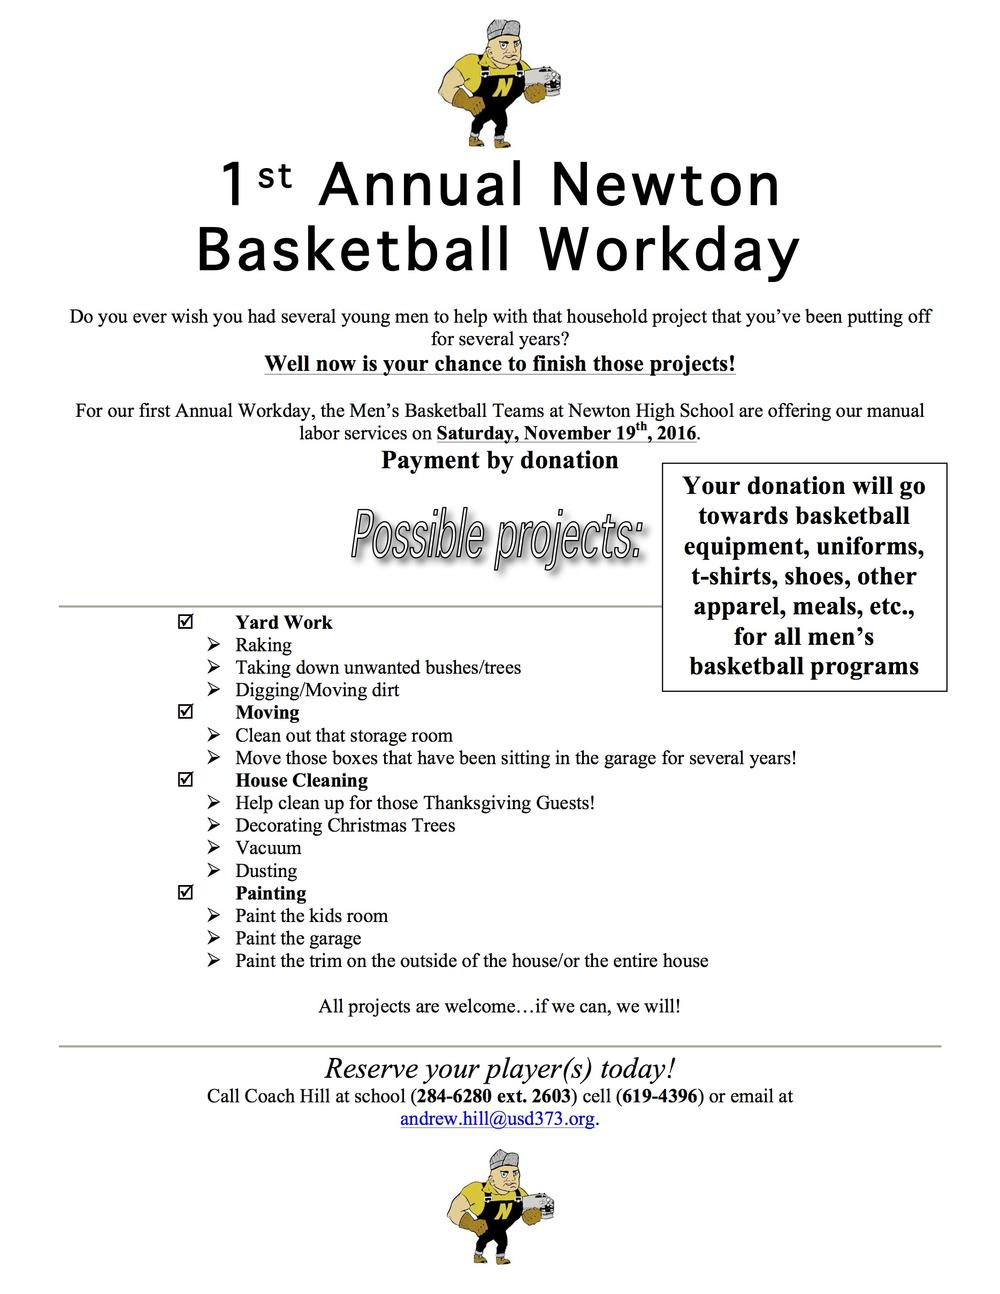 B-Ball Workday flyer 16-17.jpg